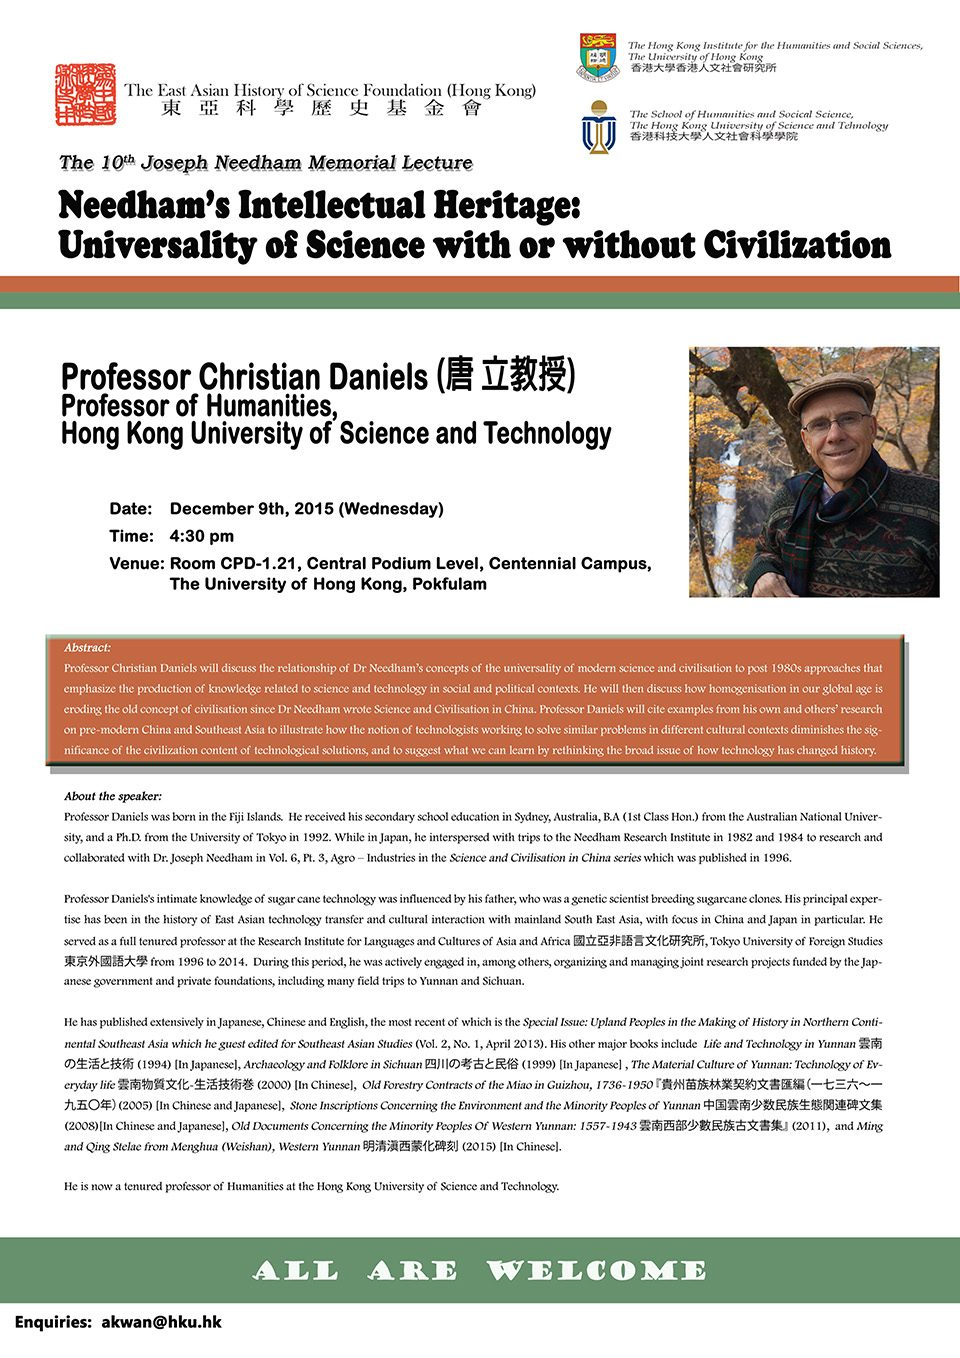 "The Tenth Joseph Needham Memorial Lecture on ""Needham's Intellectual Heritage: Universality of Science with or without Civilization"" by Professor Christian Daniels (December 9, 2015)"